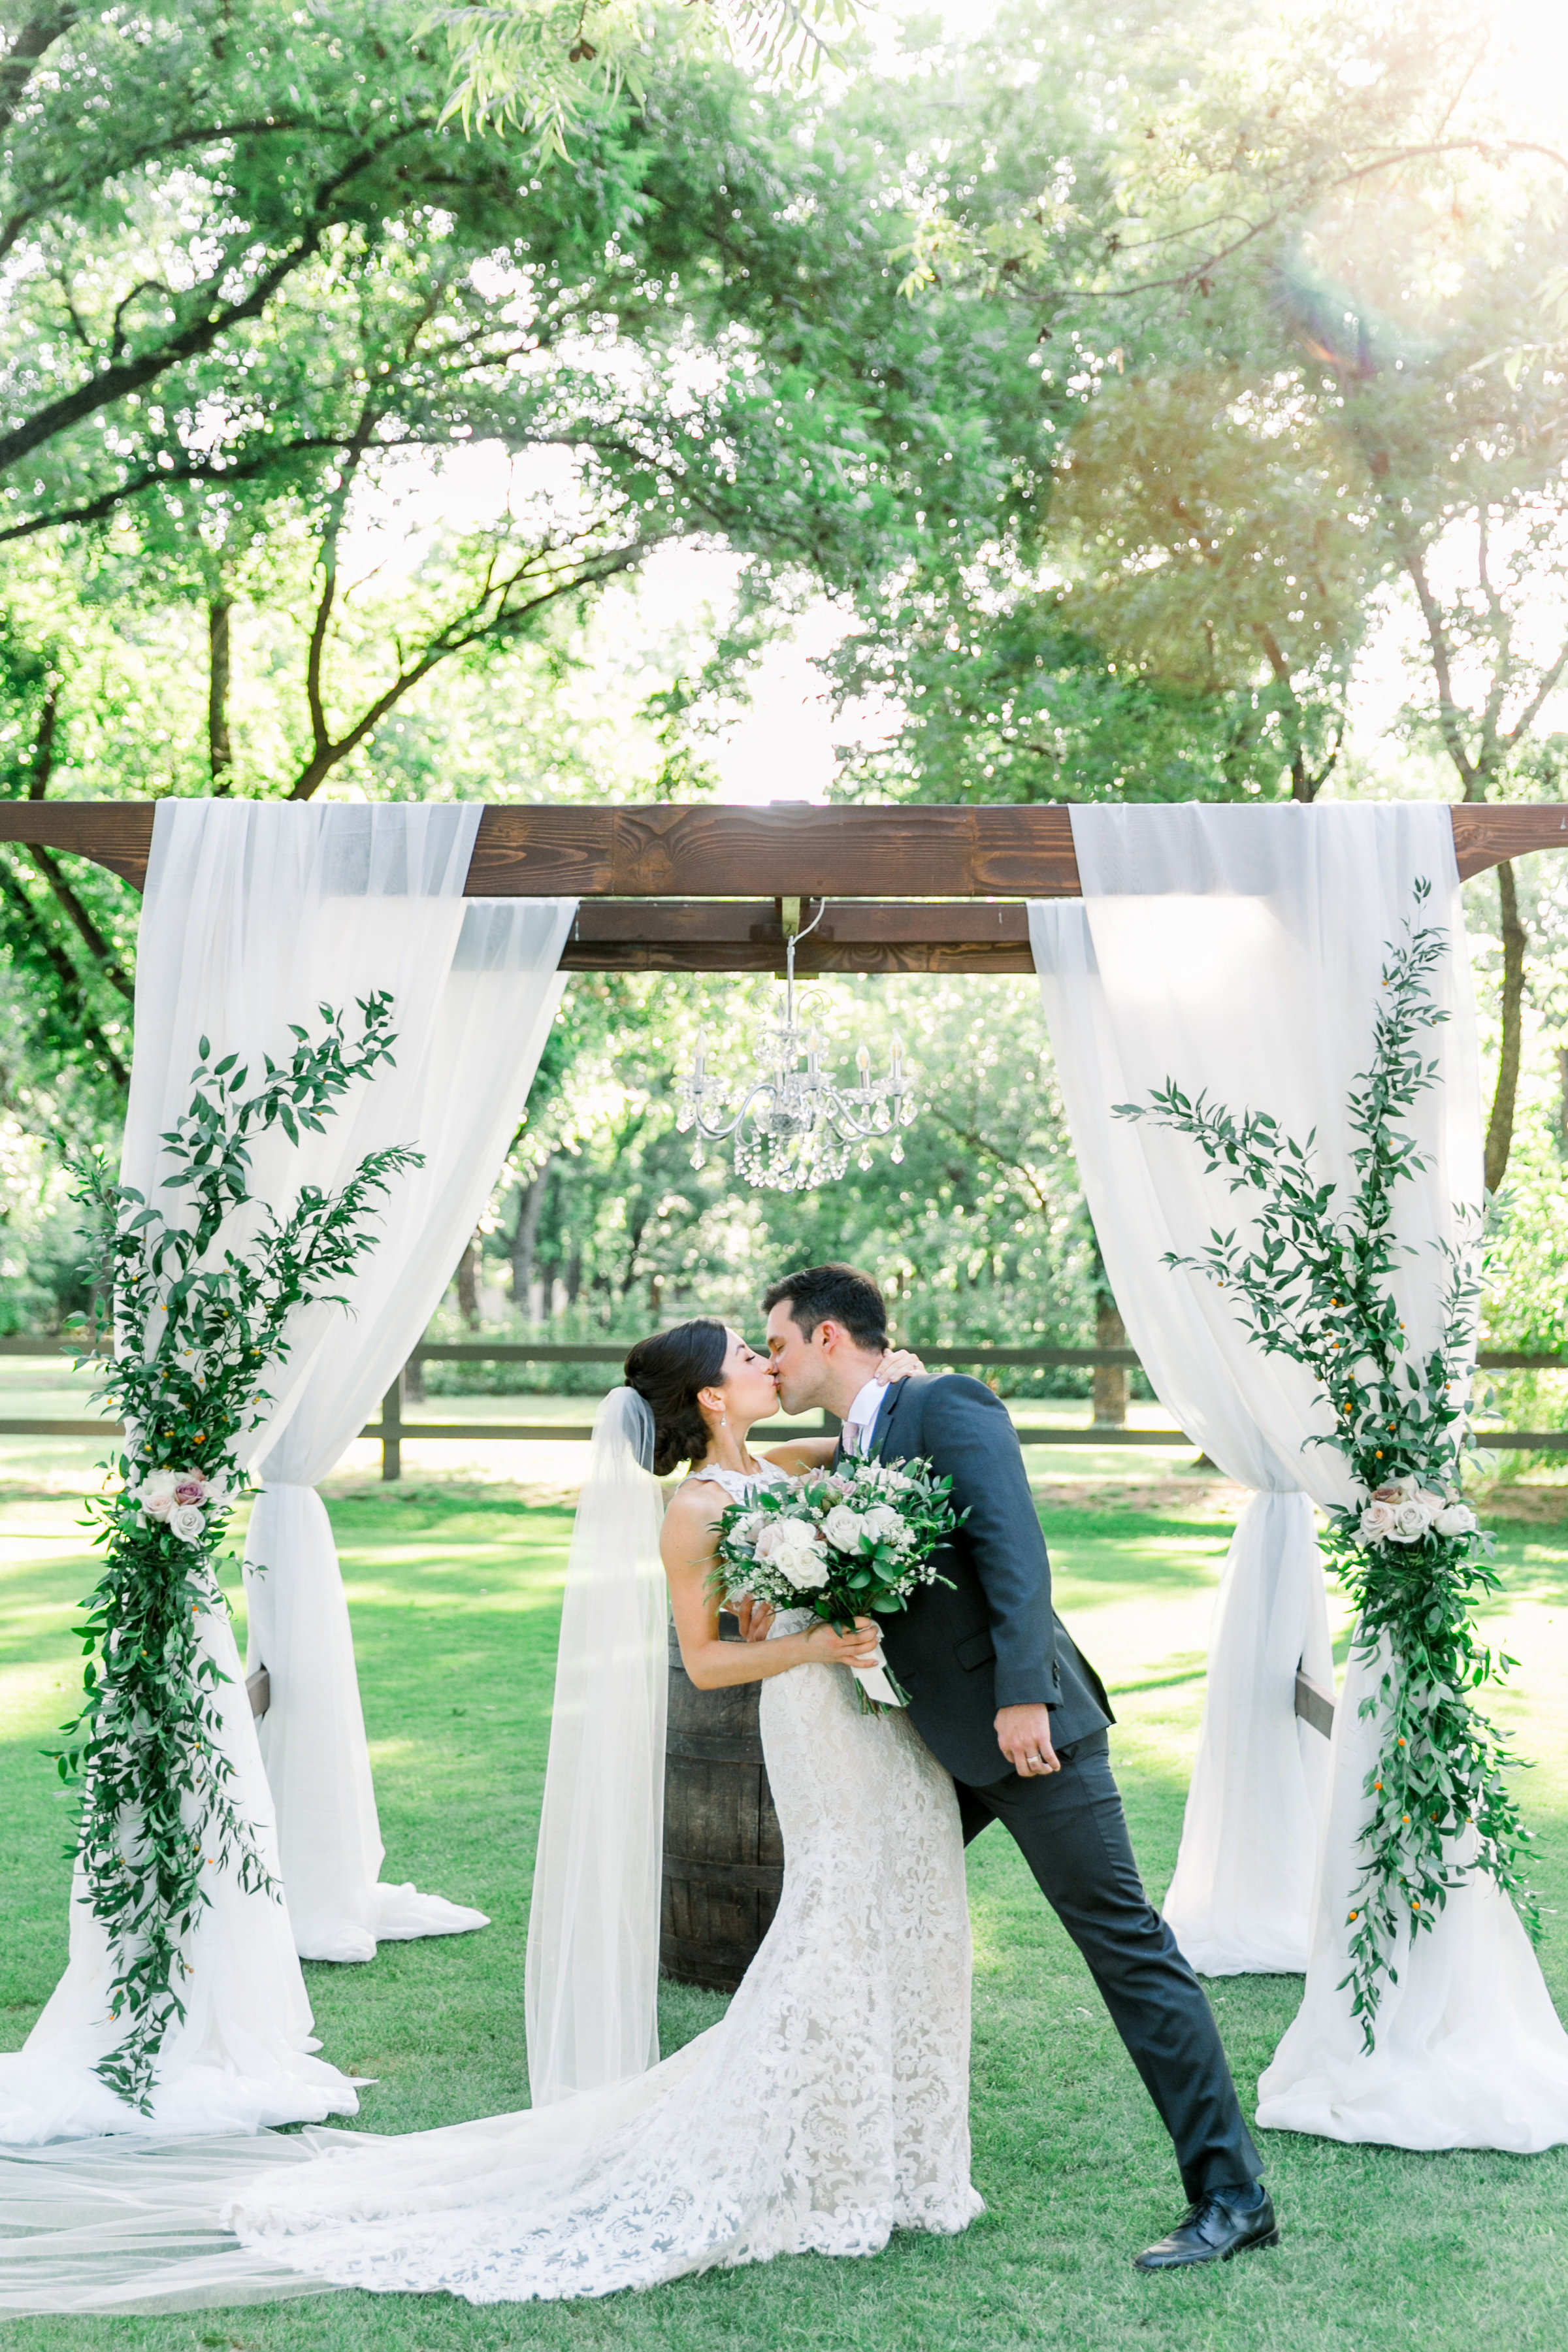 Karlie Colleen Photography - Venue At The Grove - Arizona Wedding - Maggie & Grant -68